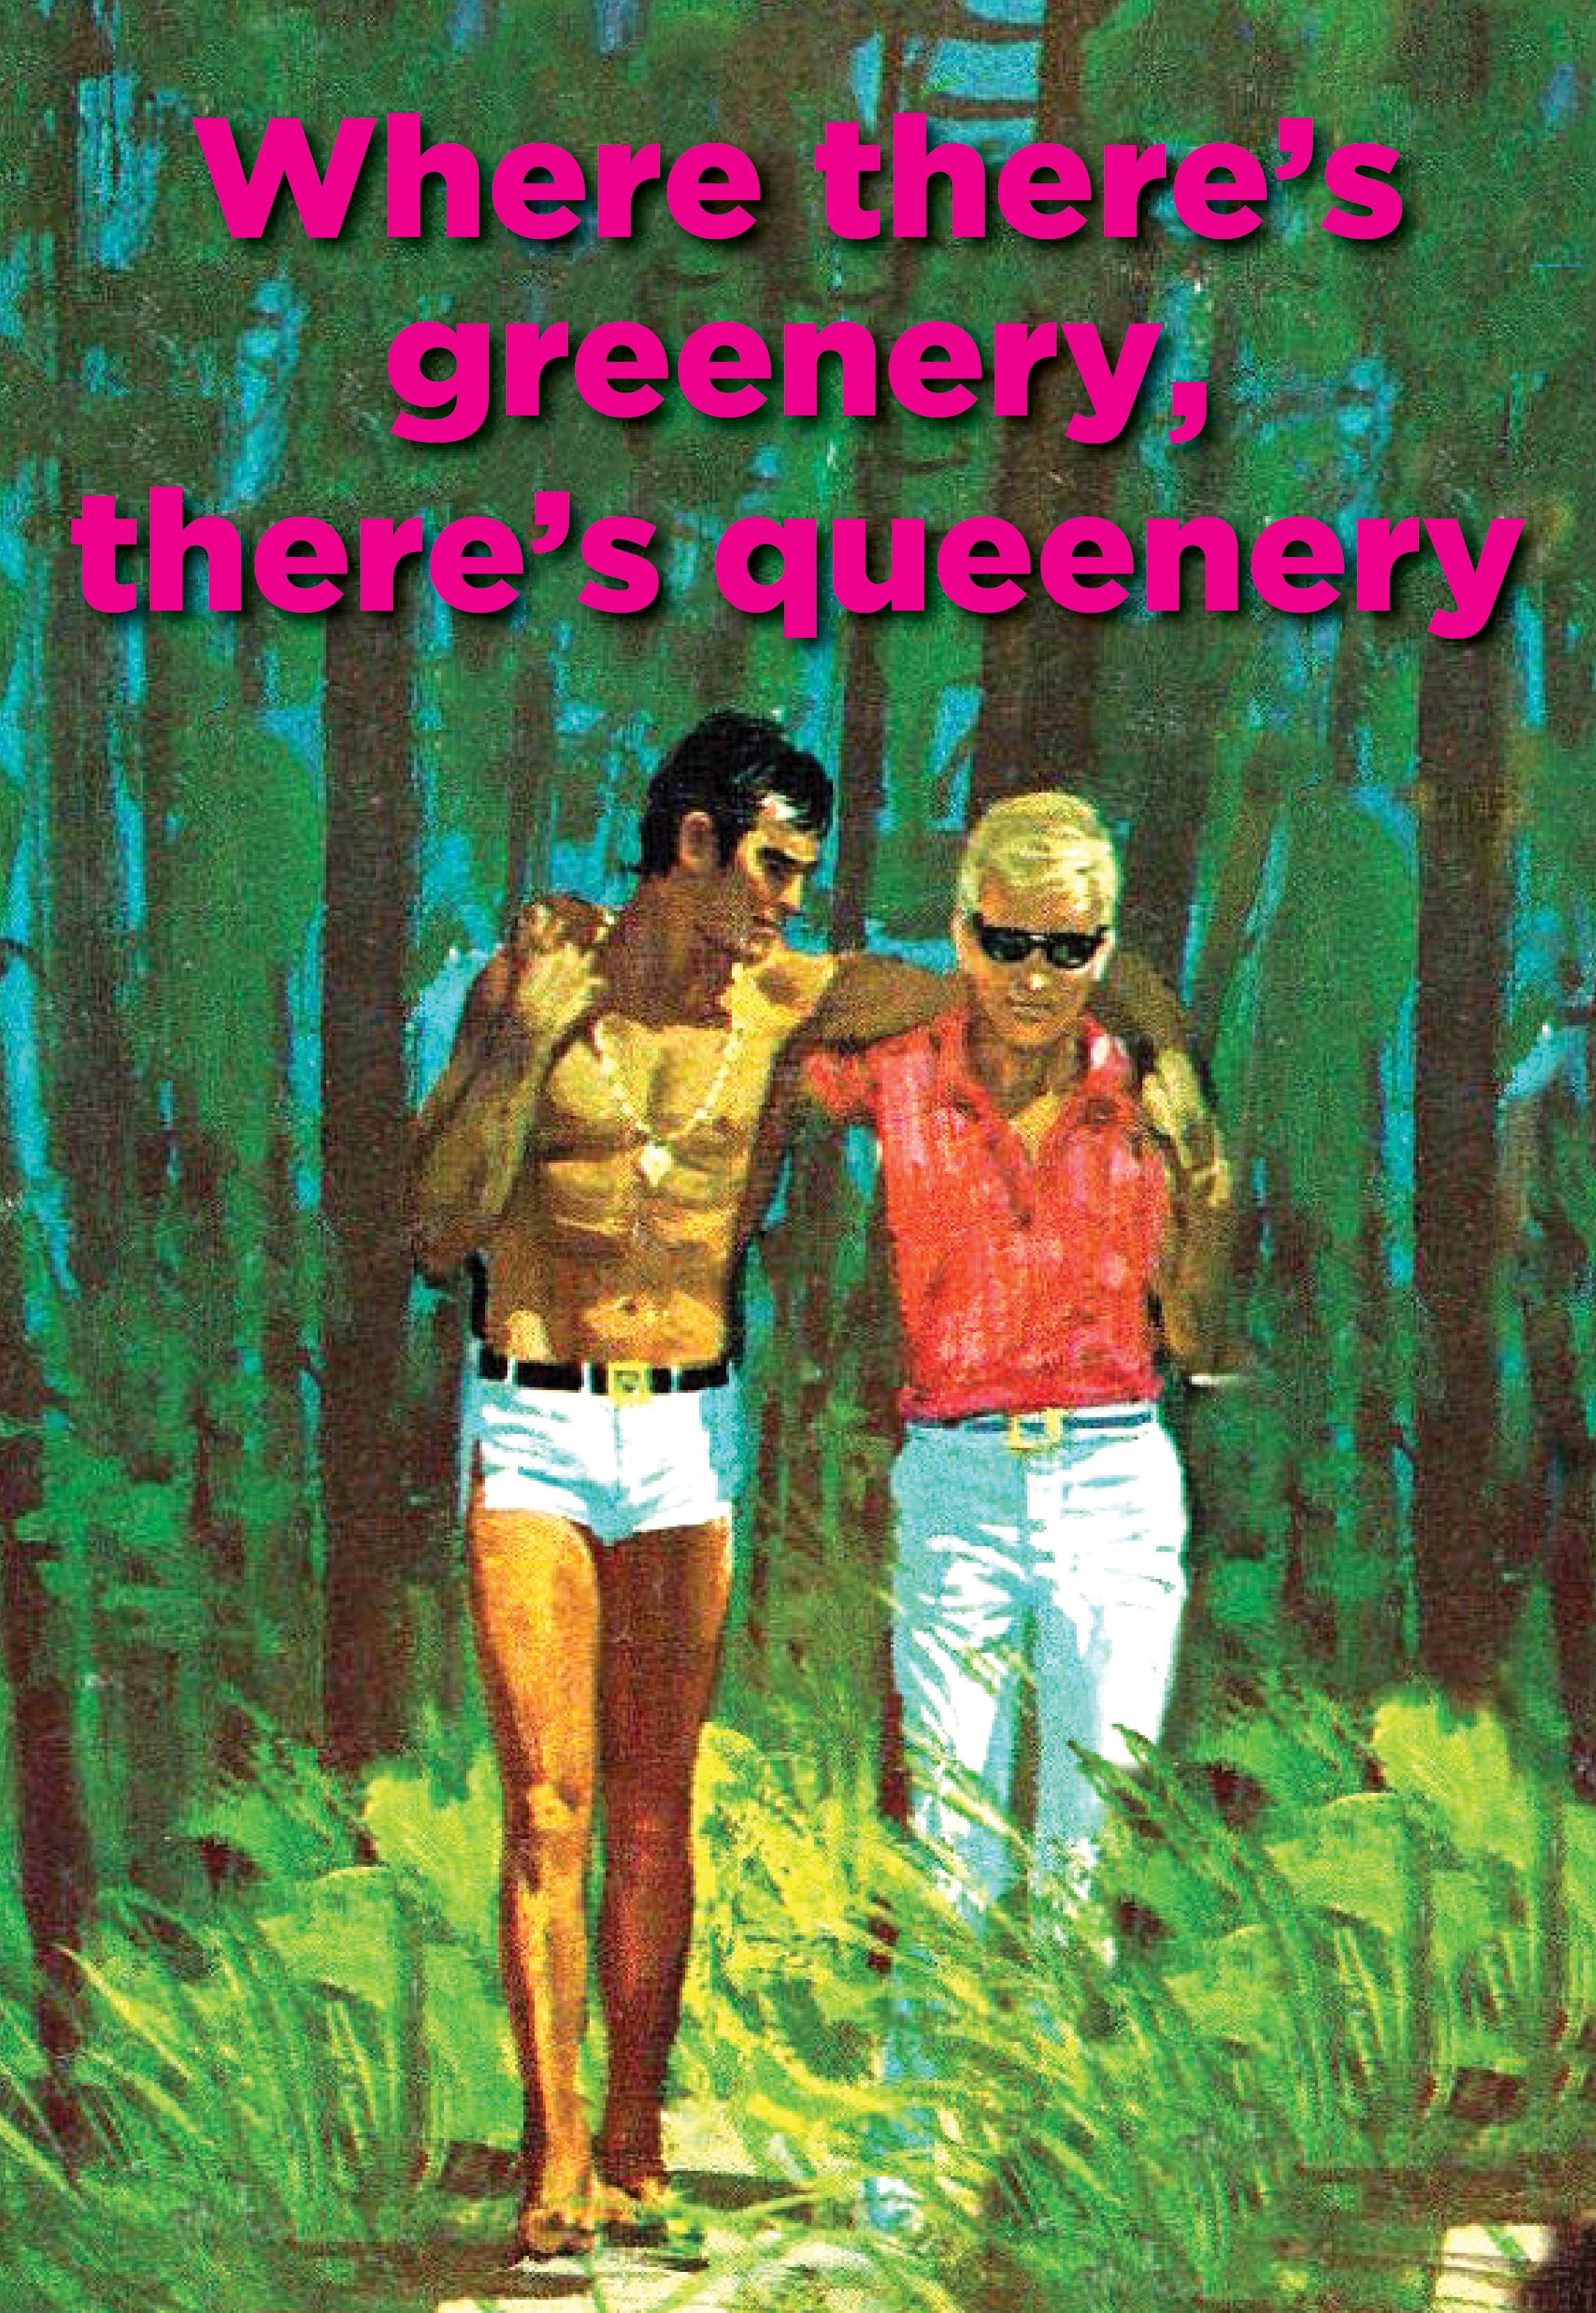 Where there's greenery, there's queenery